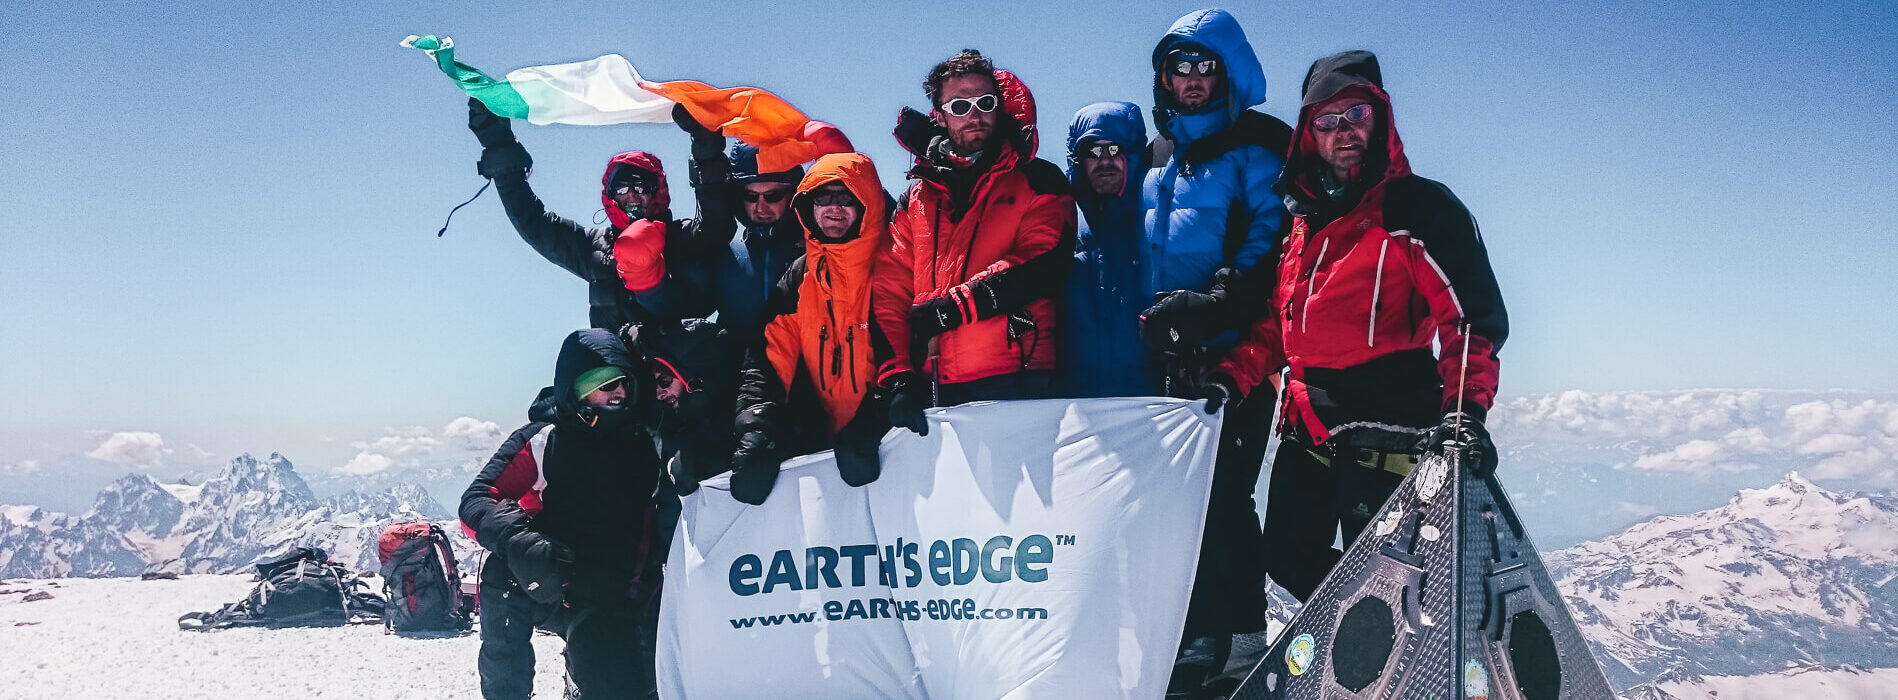 Elbrus with Earth's Edge 4